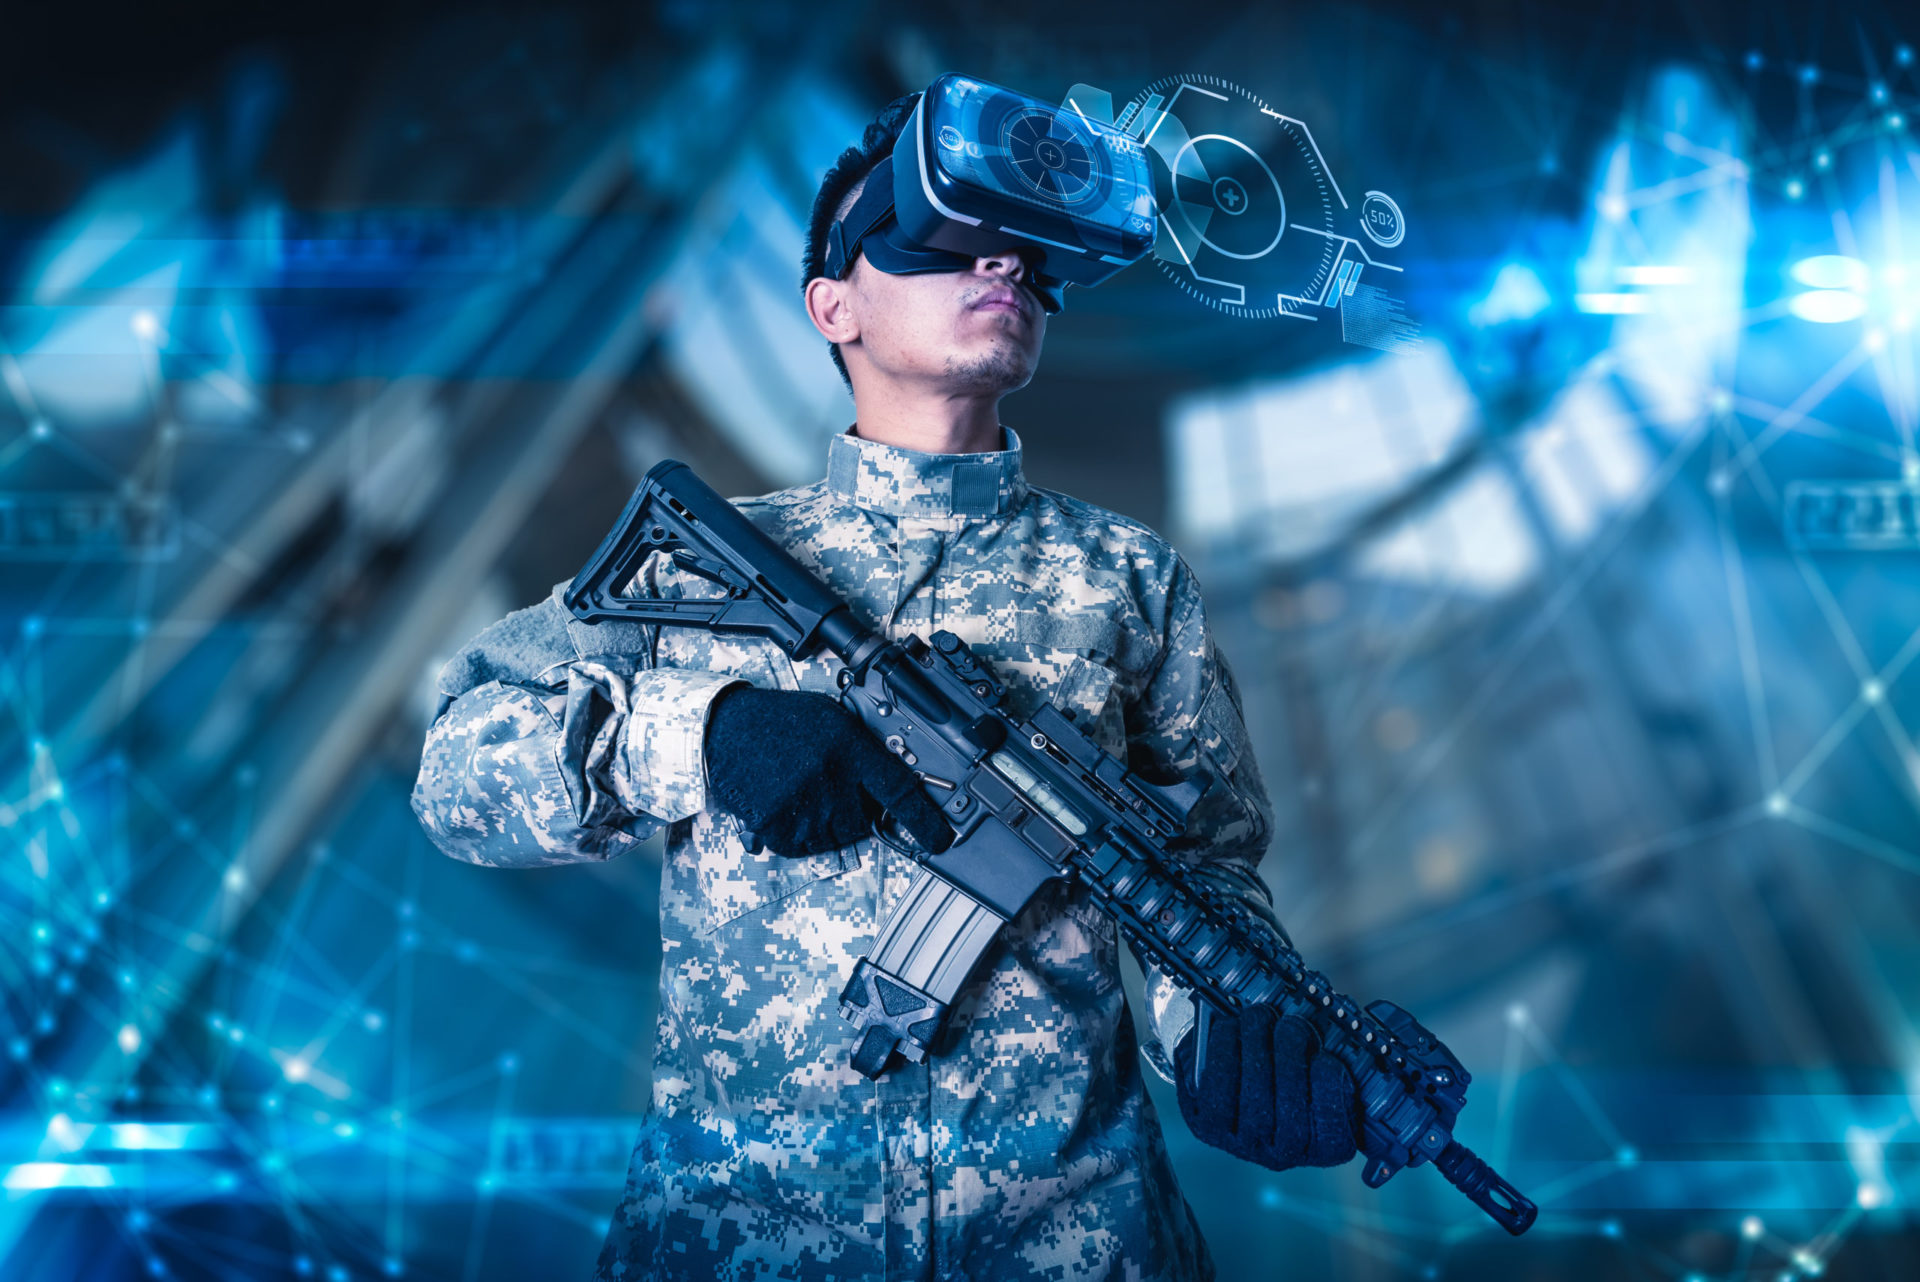 U.S. Special Operations Command Hyper-Enabled Operator